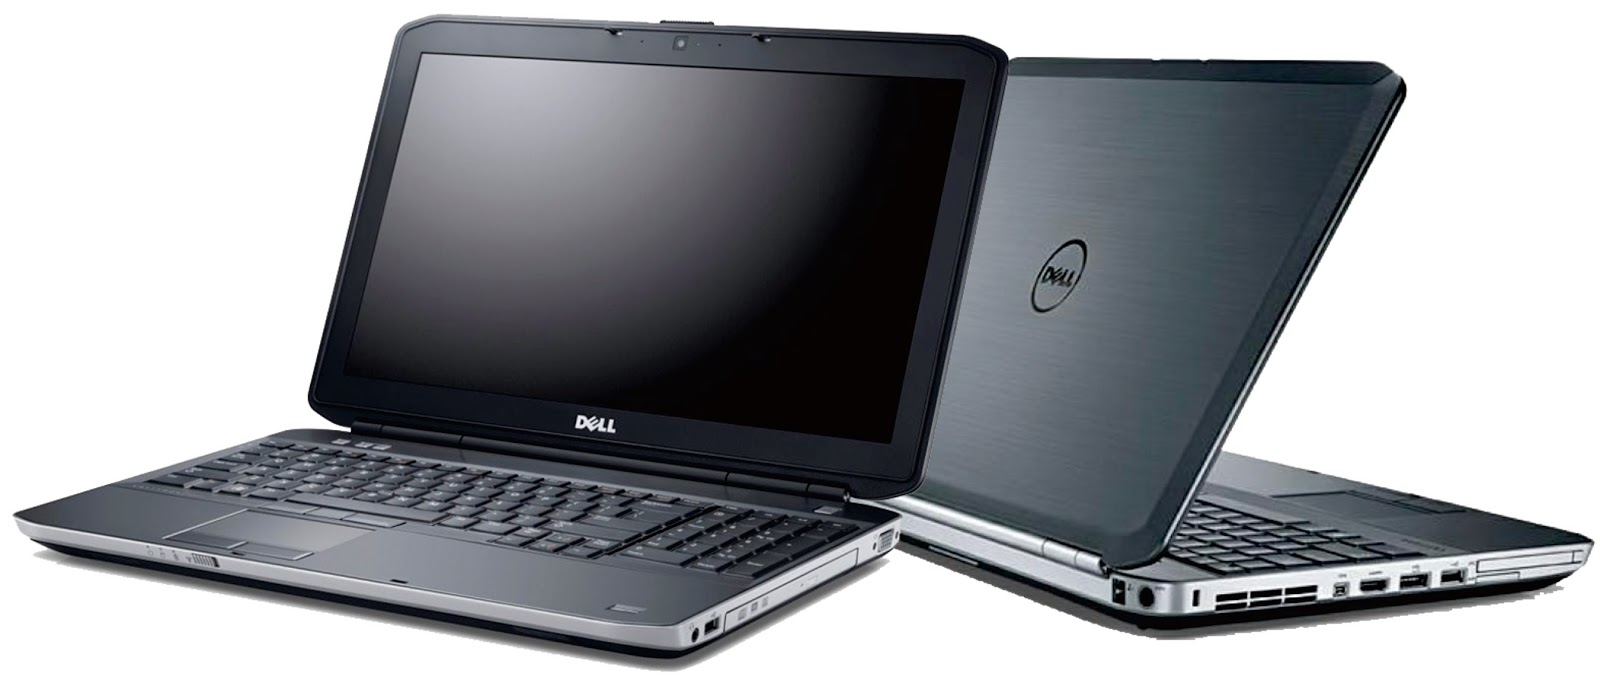 Download Center: Support Drivers Dell Latitude E5530 for Windows 10, 64Bit